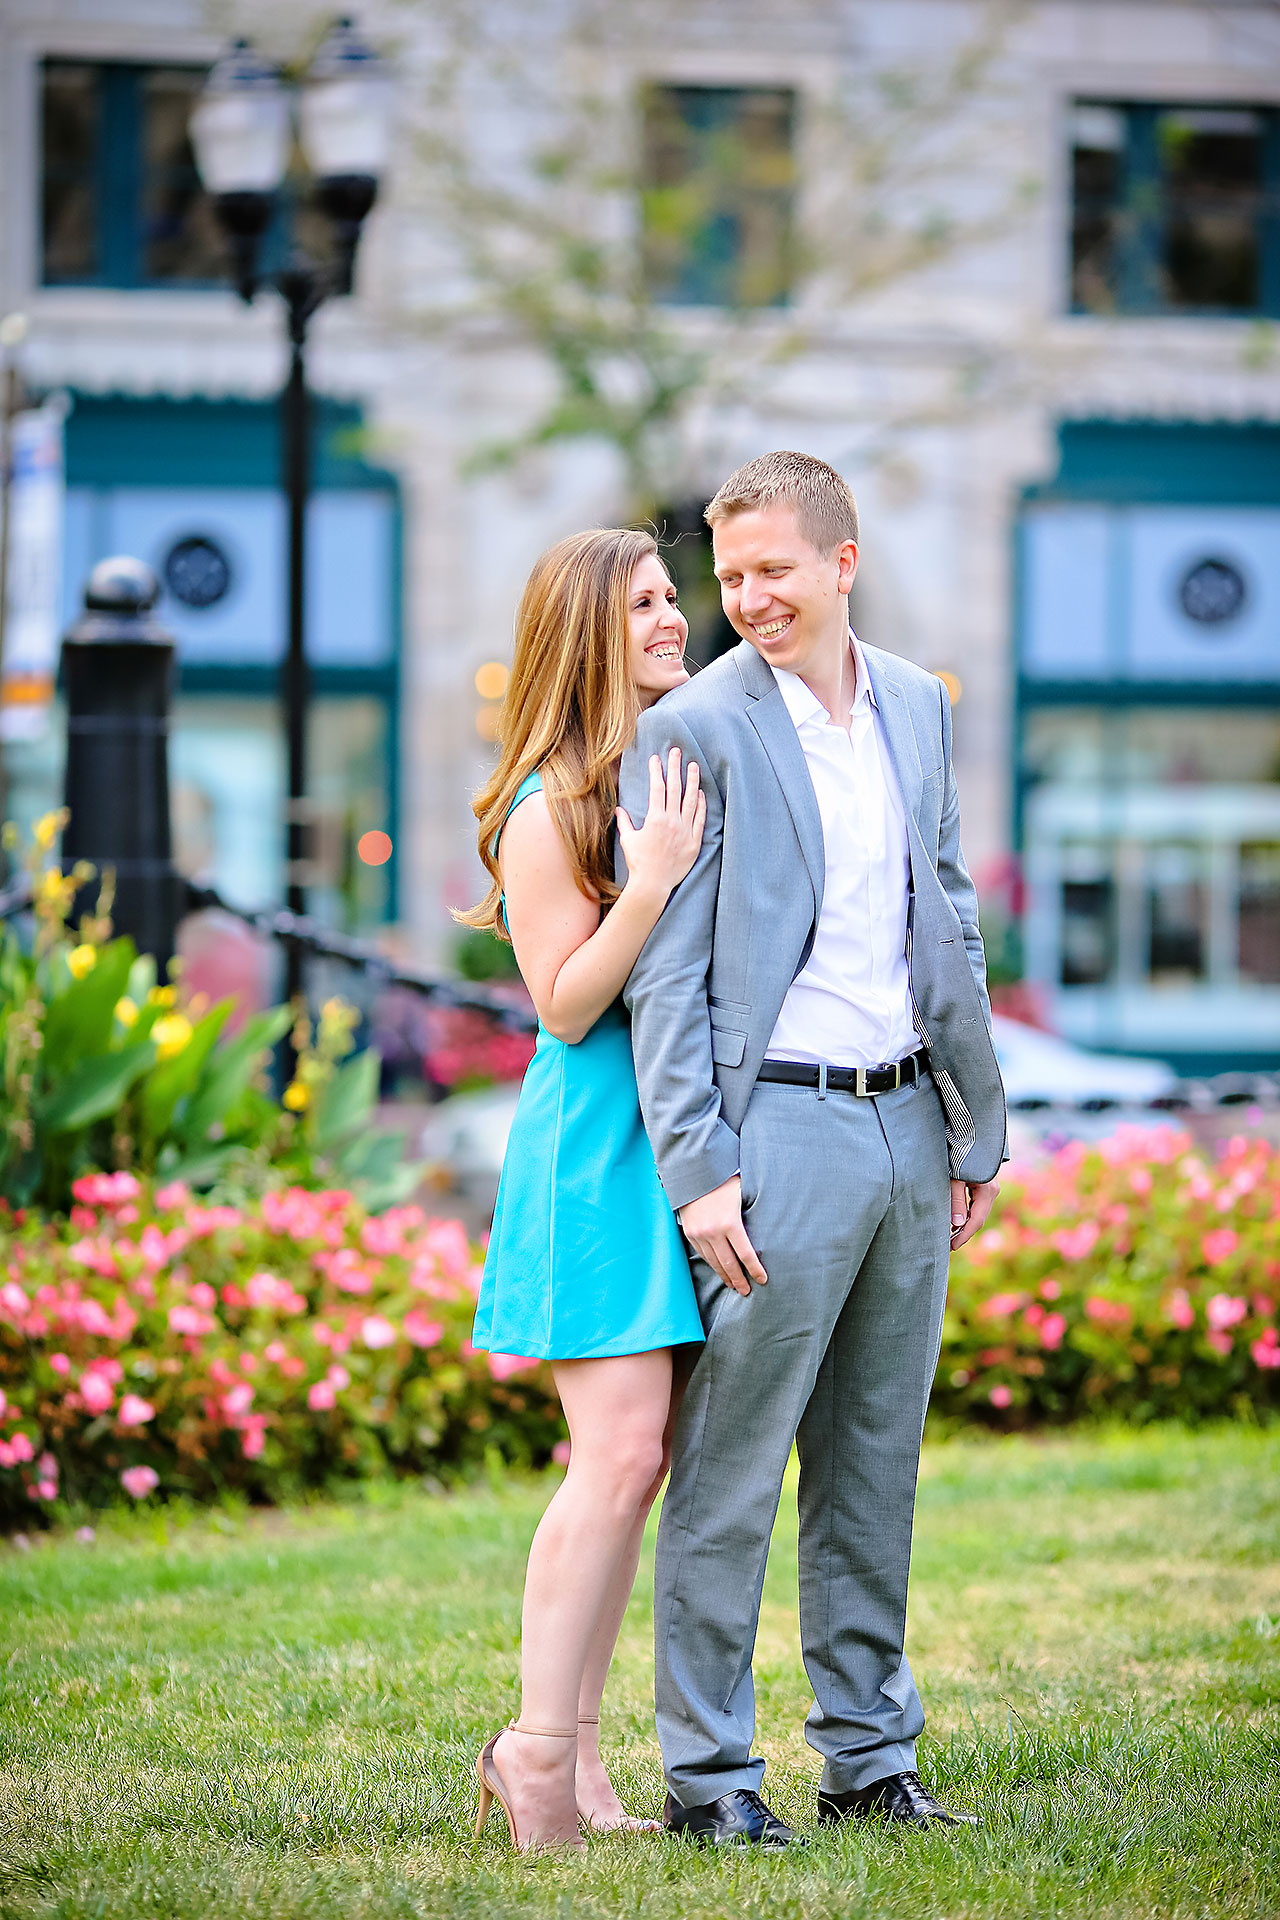 Chelsea Jeff Downtown Indy Engagement Session 063